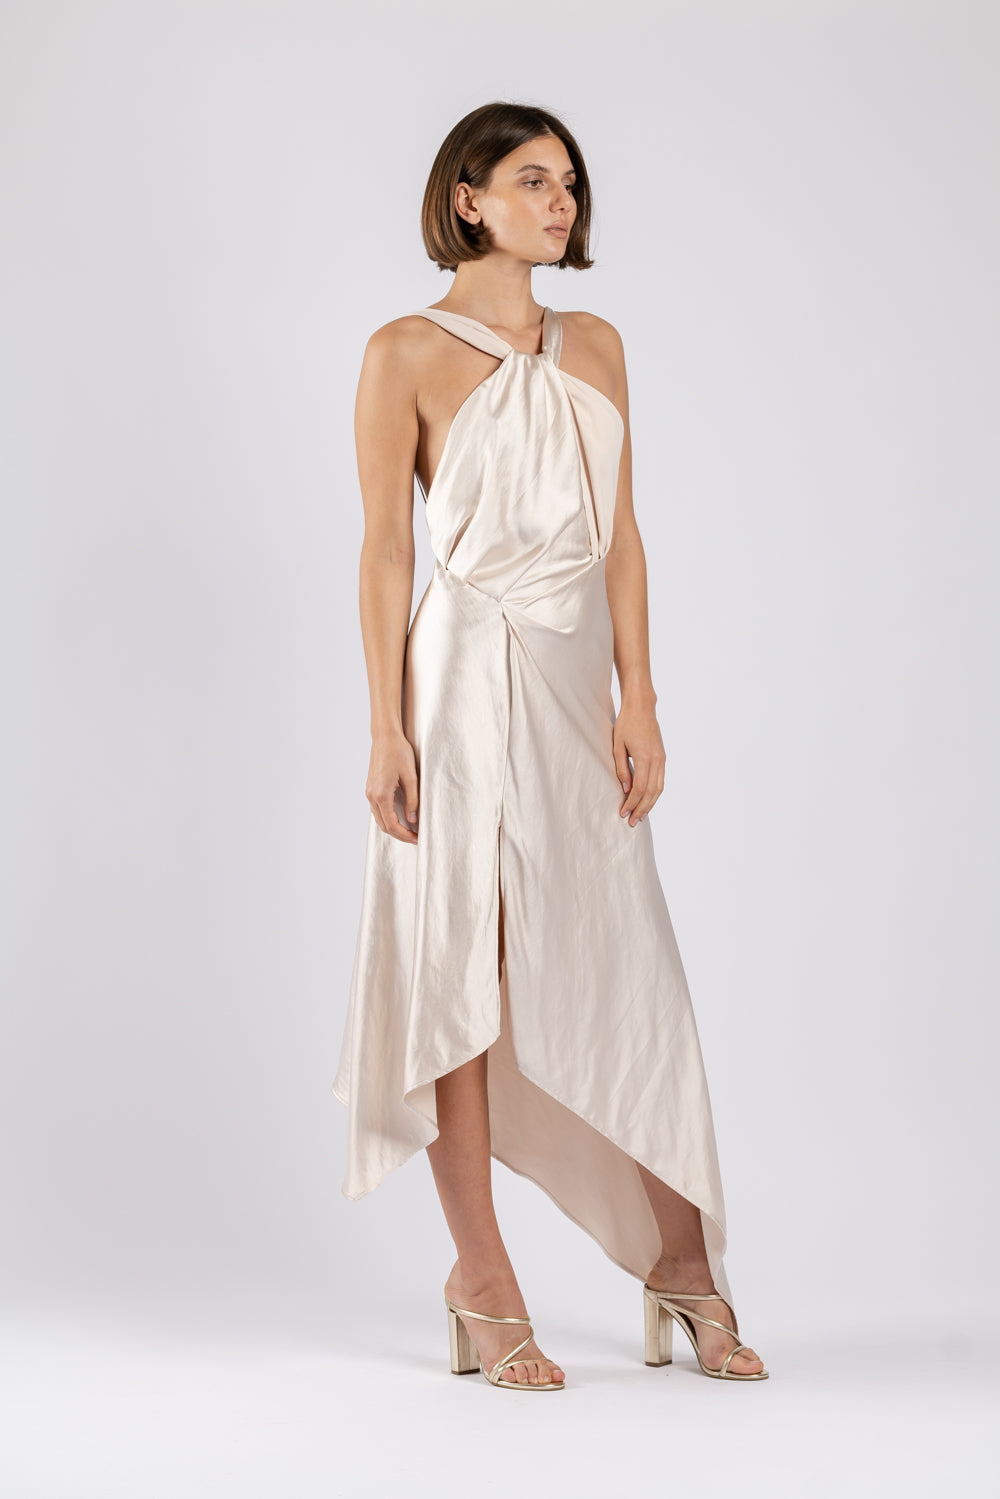 AUDREY DRESS IN MOTHER OF PEARL PO